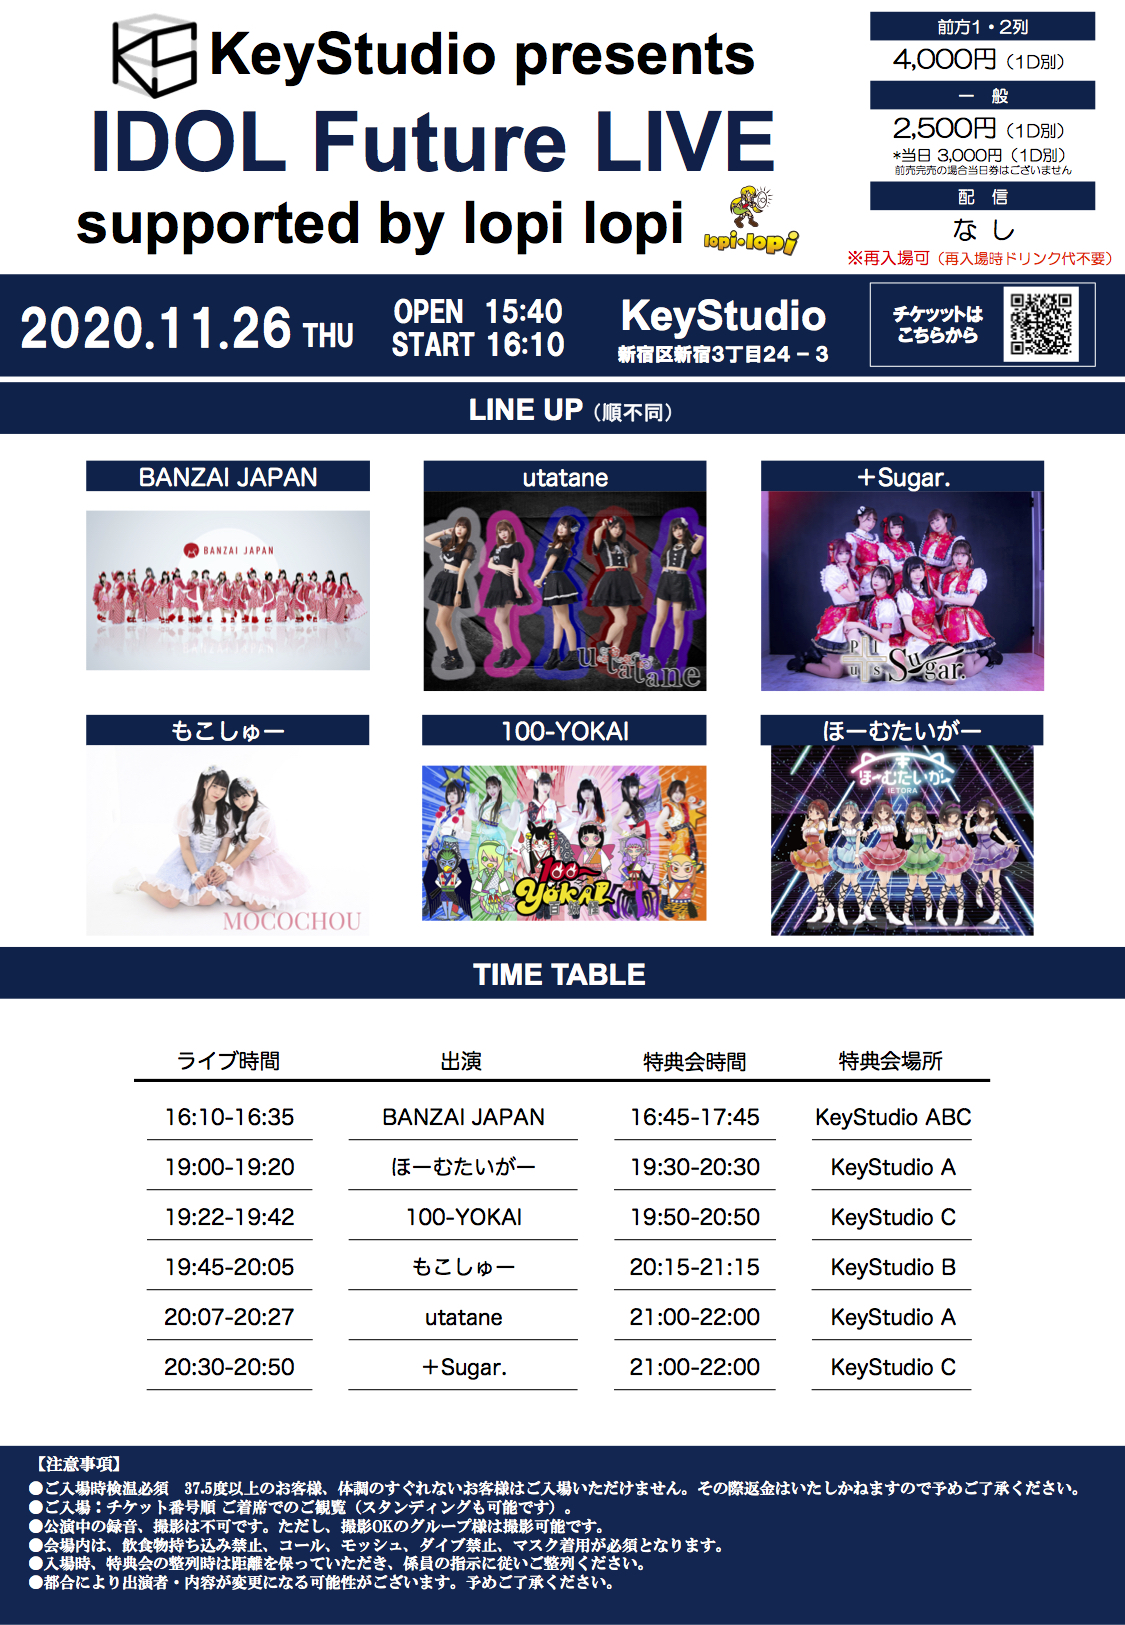 Keystudio Presents IDOL Future LIVE supported by lopi lopi 1126